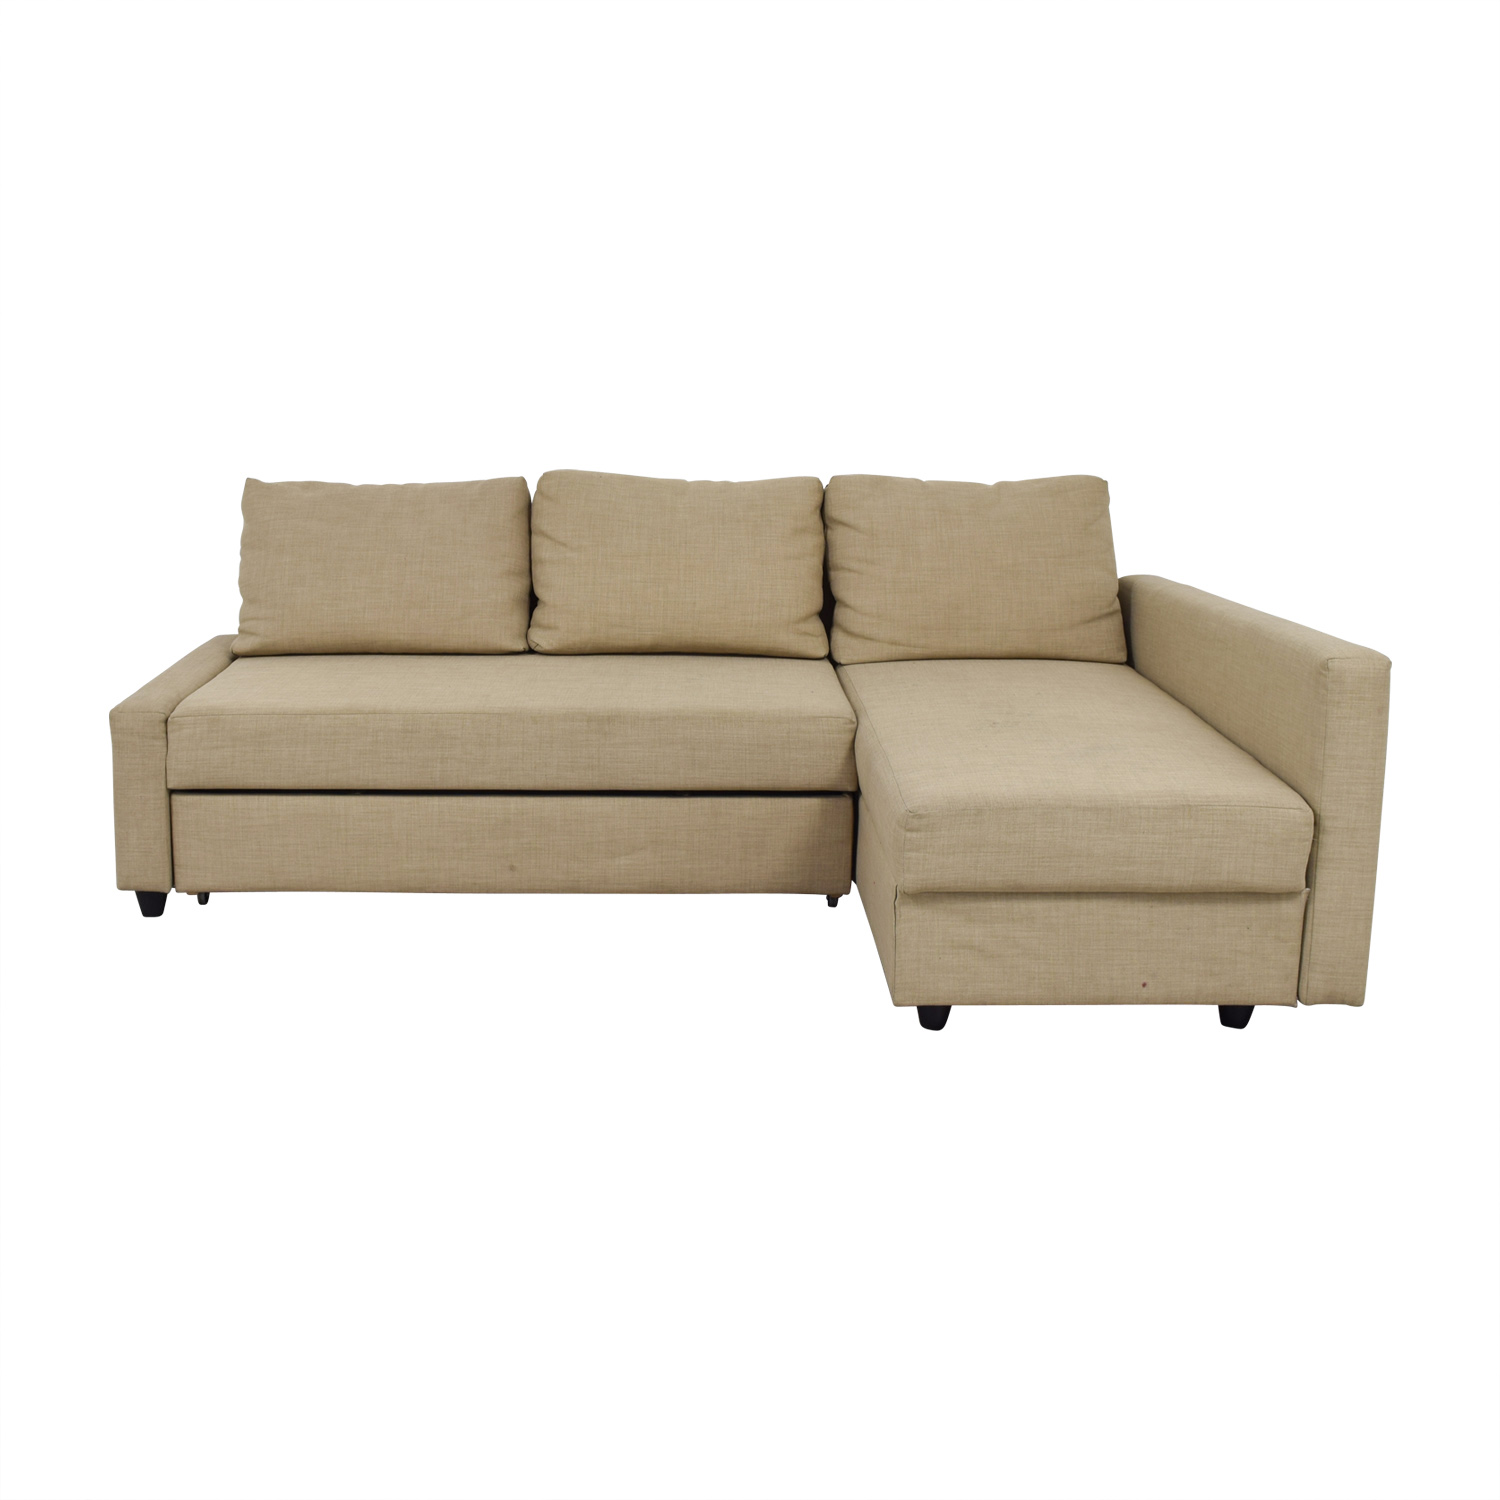 buy IKEA Friheten Beige Sleeper Sectional IKEA Sofas